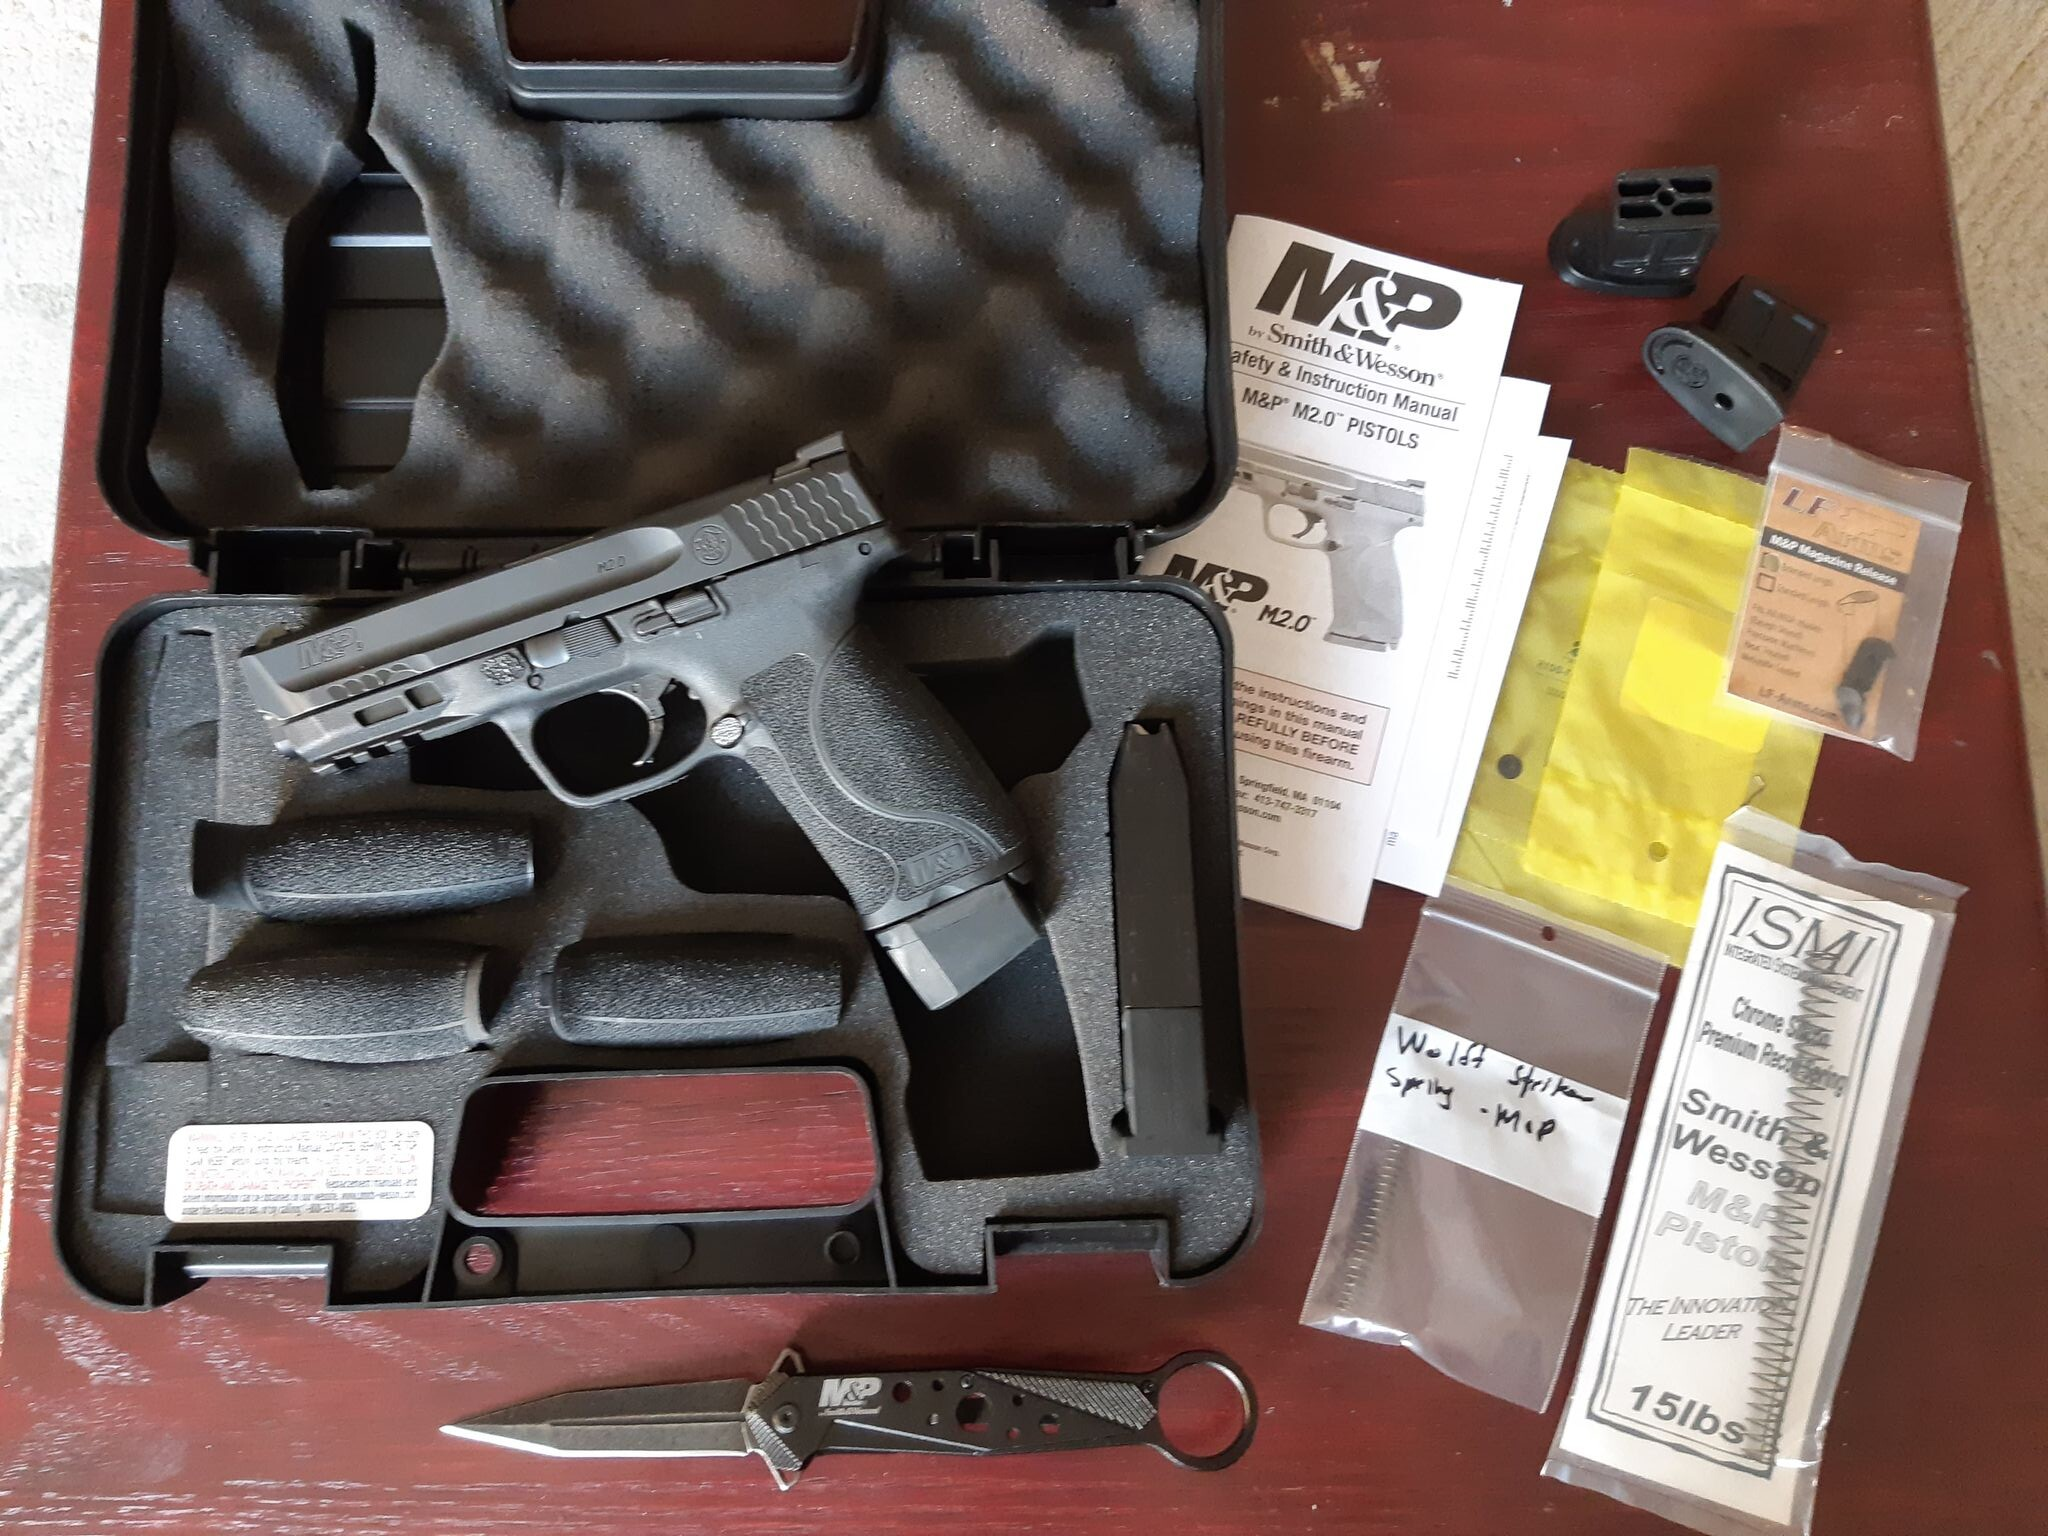 Smith and Wesson MP9 2.0 AgnsTN